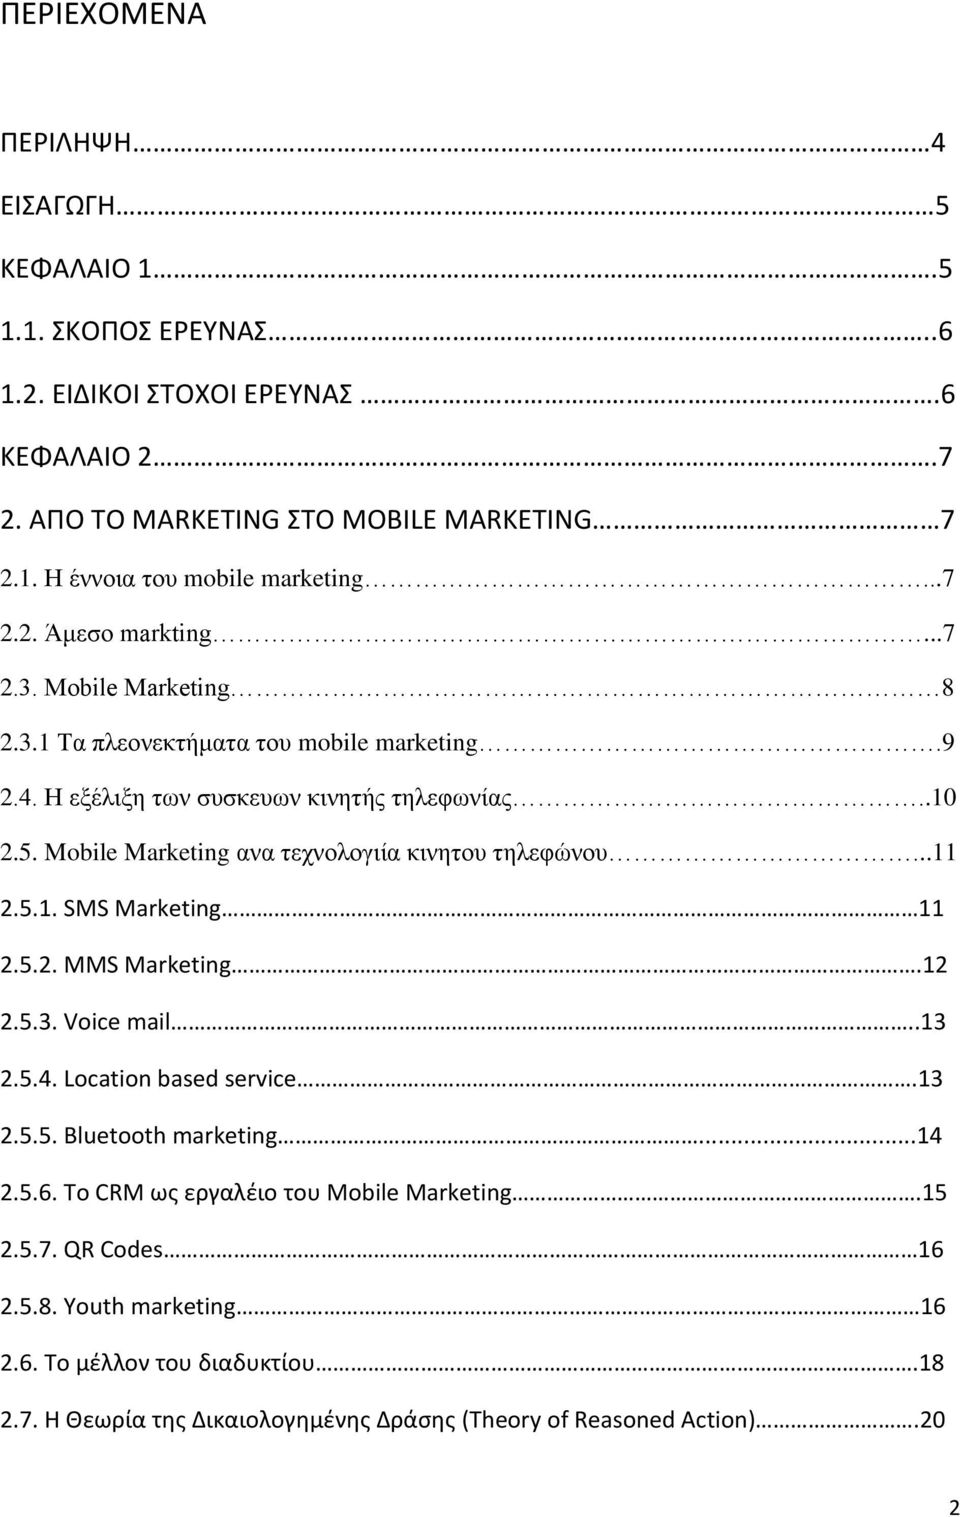 Mobile Marketing ανα τεχνολογιία κινητου τηλεφώνου...11 2.5.1. SMS Marketing.. 11 2.5.2. MMS Marketing.12 2.5.3. Voice mail..13 2.5.4. Location based service.13 2.5.5. Bluetooth marketing.